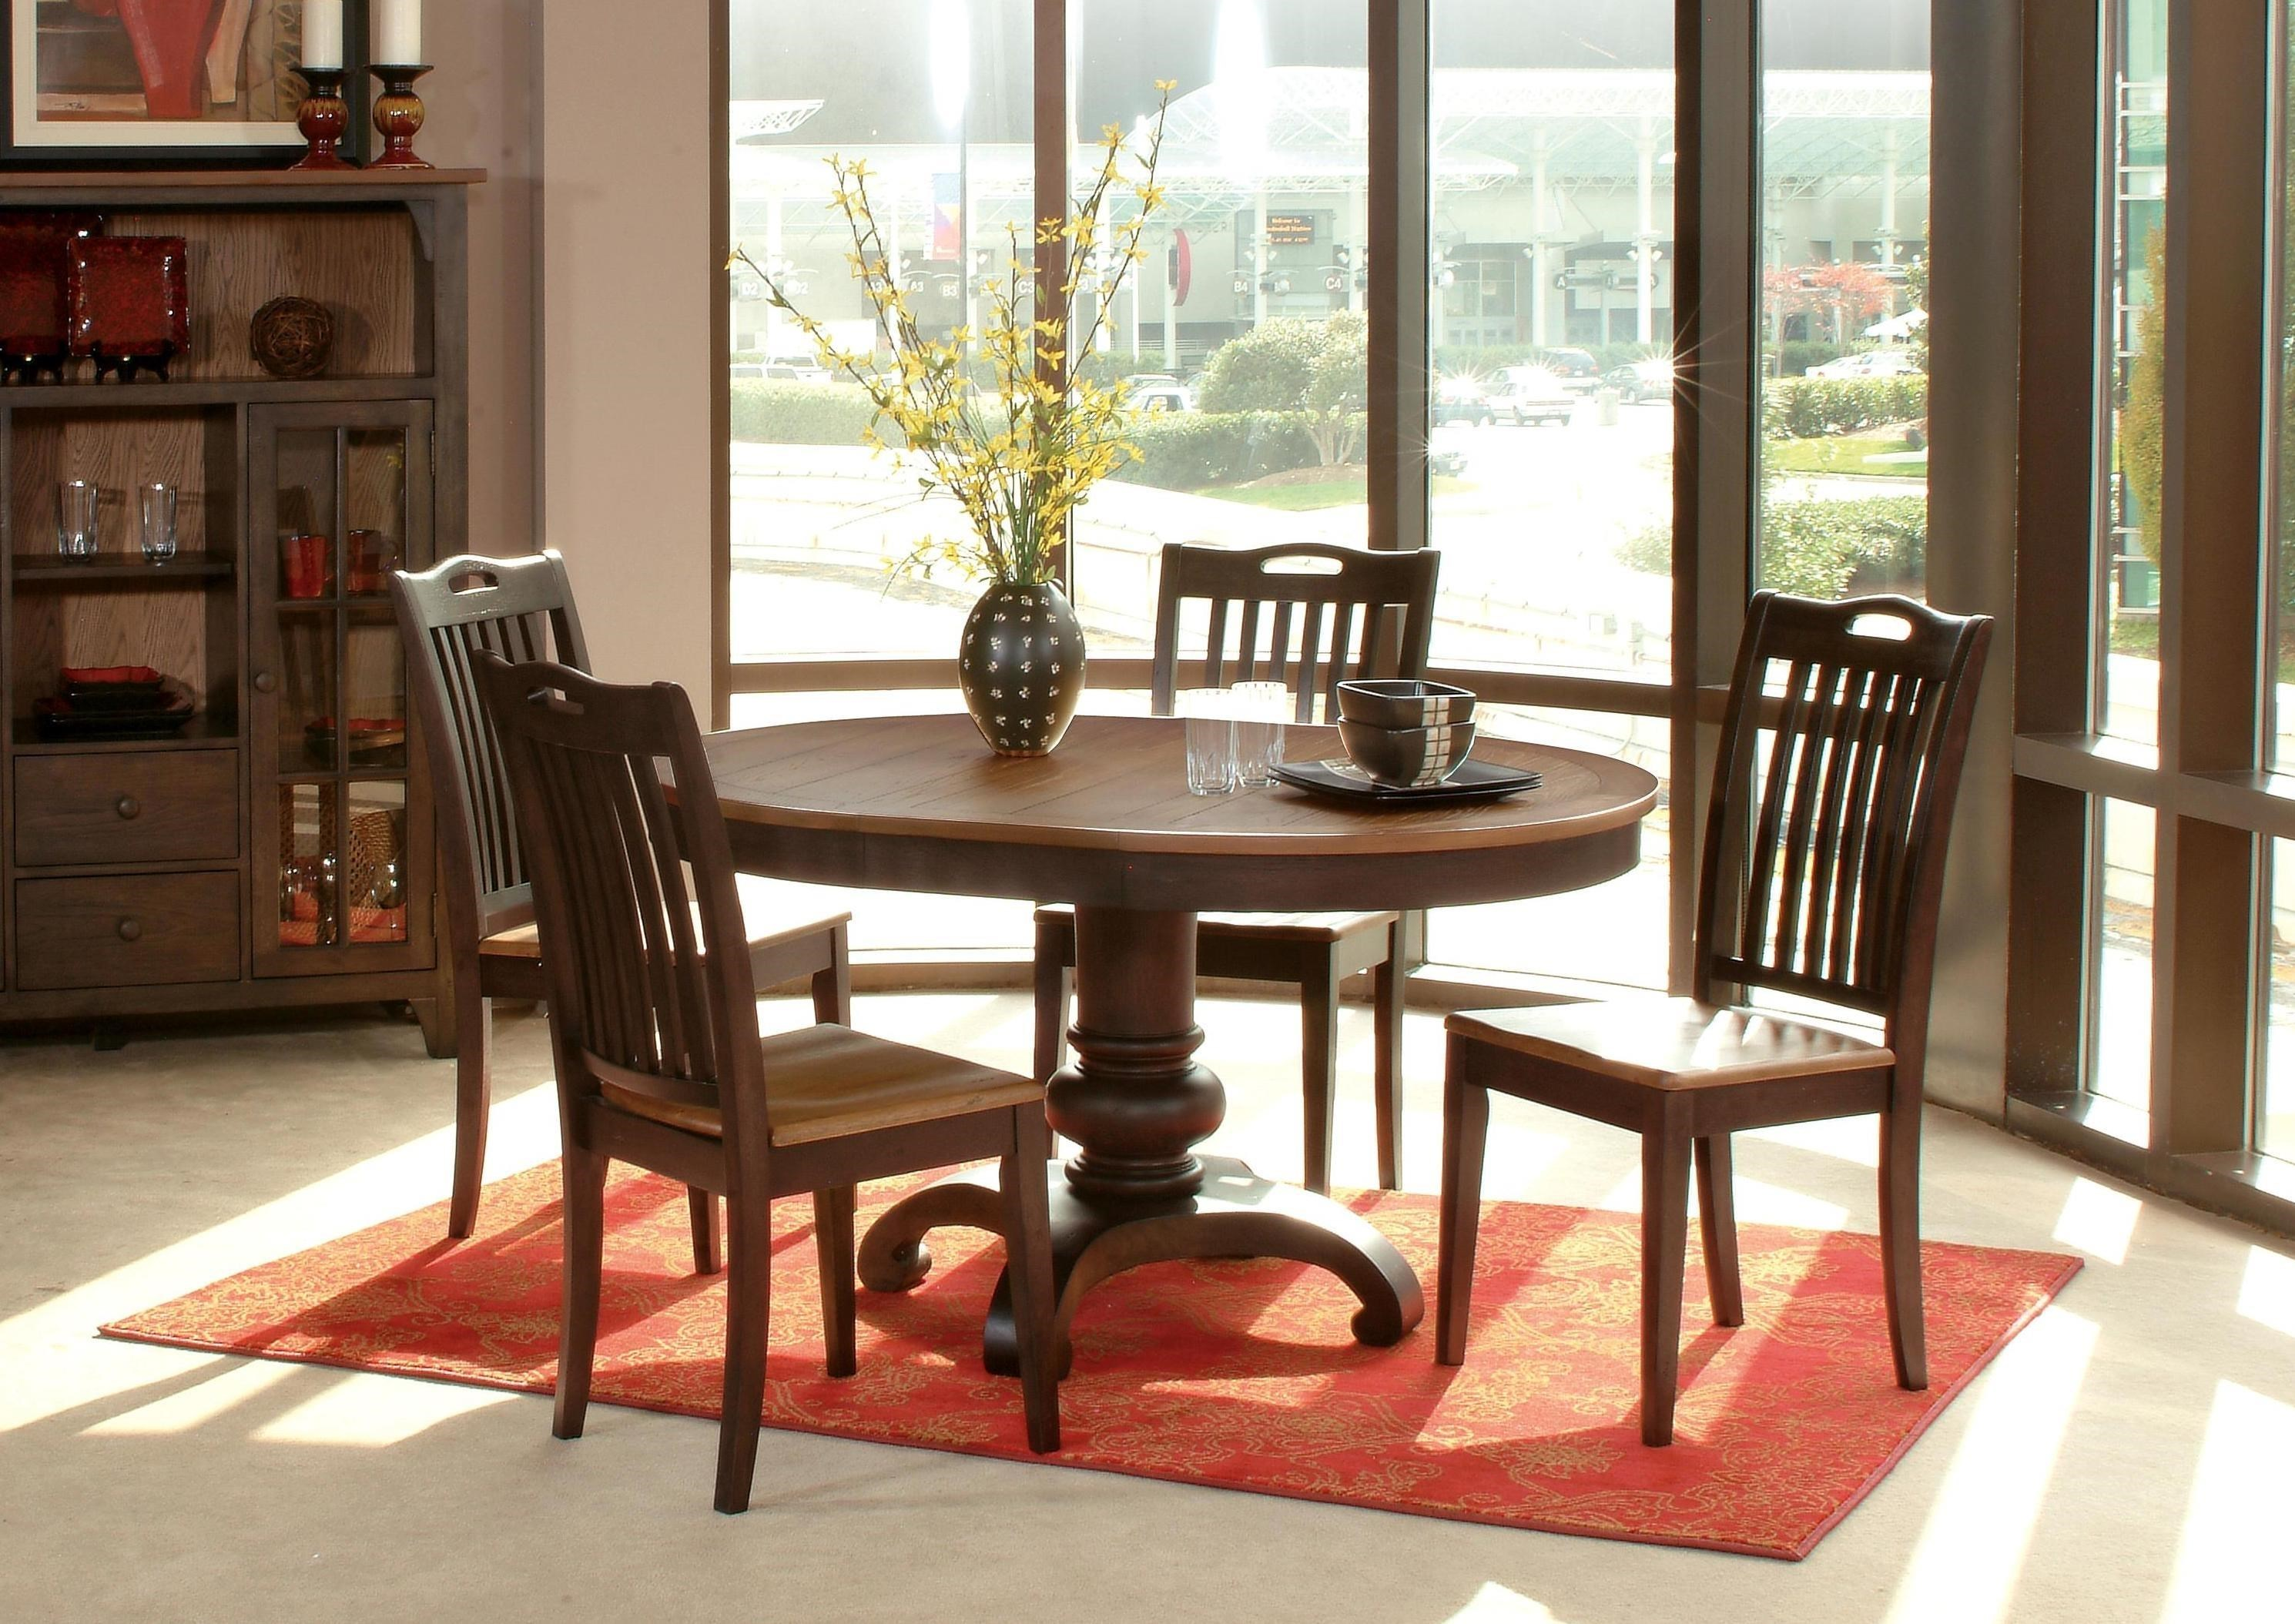 Delicieux Morris Home Furnishings GraftonGrafton 5 Piece Dining Set